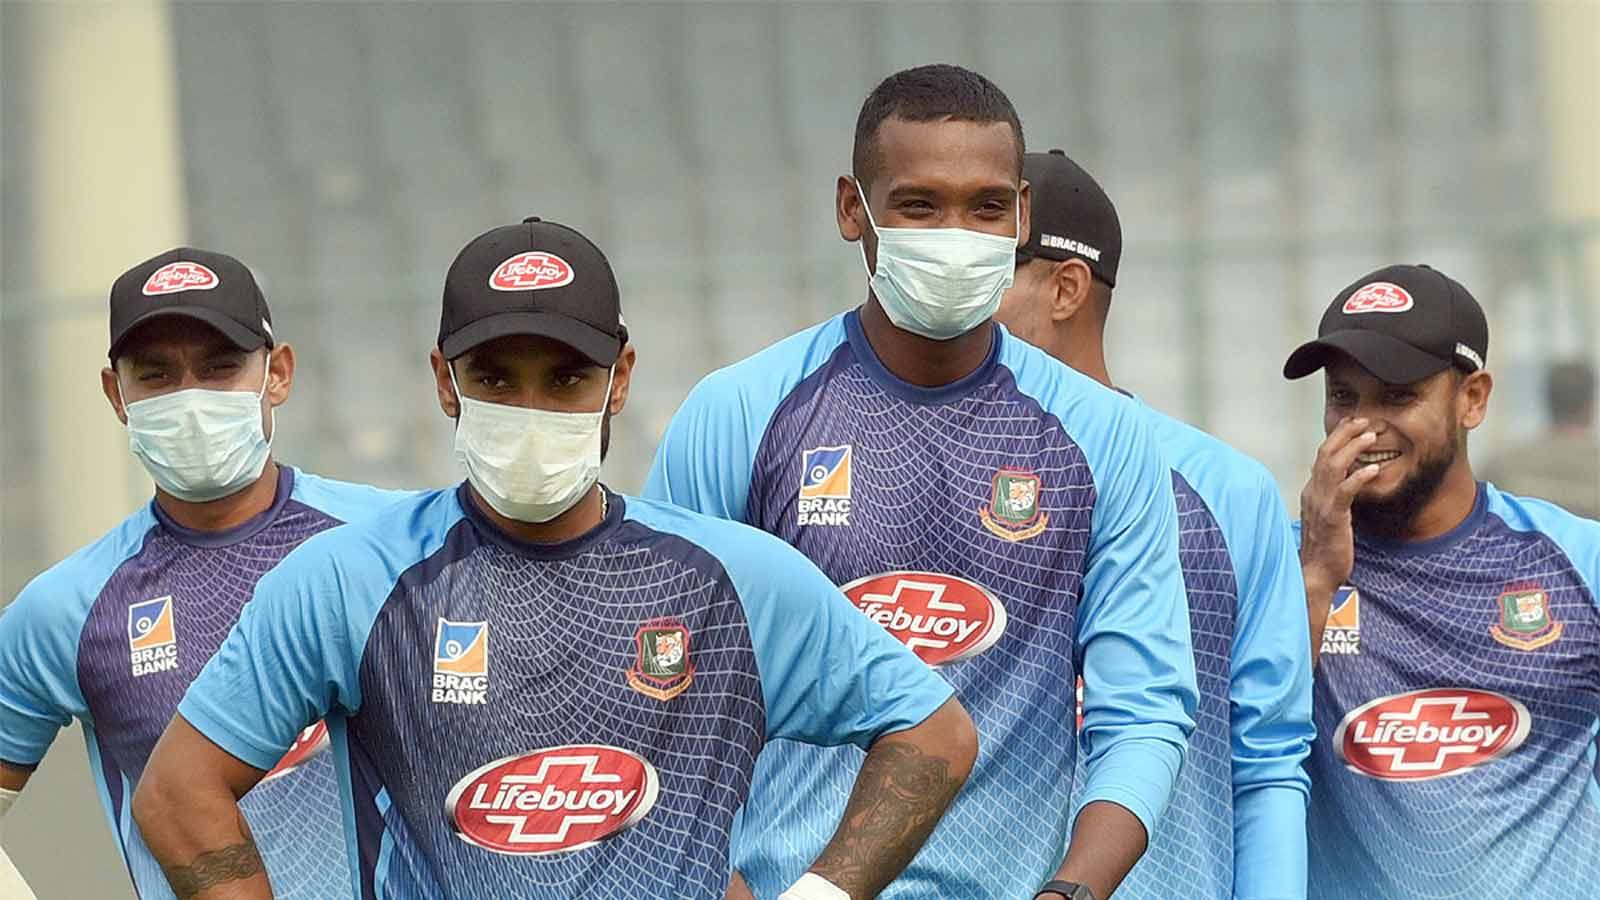 1st-t20i-bangladesh-cricketers-wear-pollution-mask-during-practice-session-in-delhi